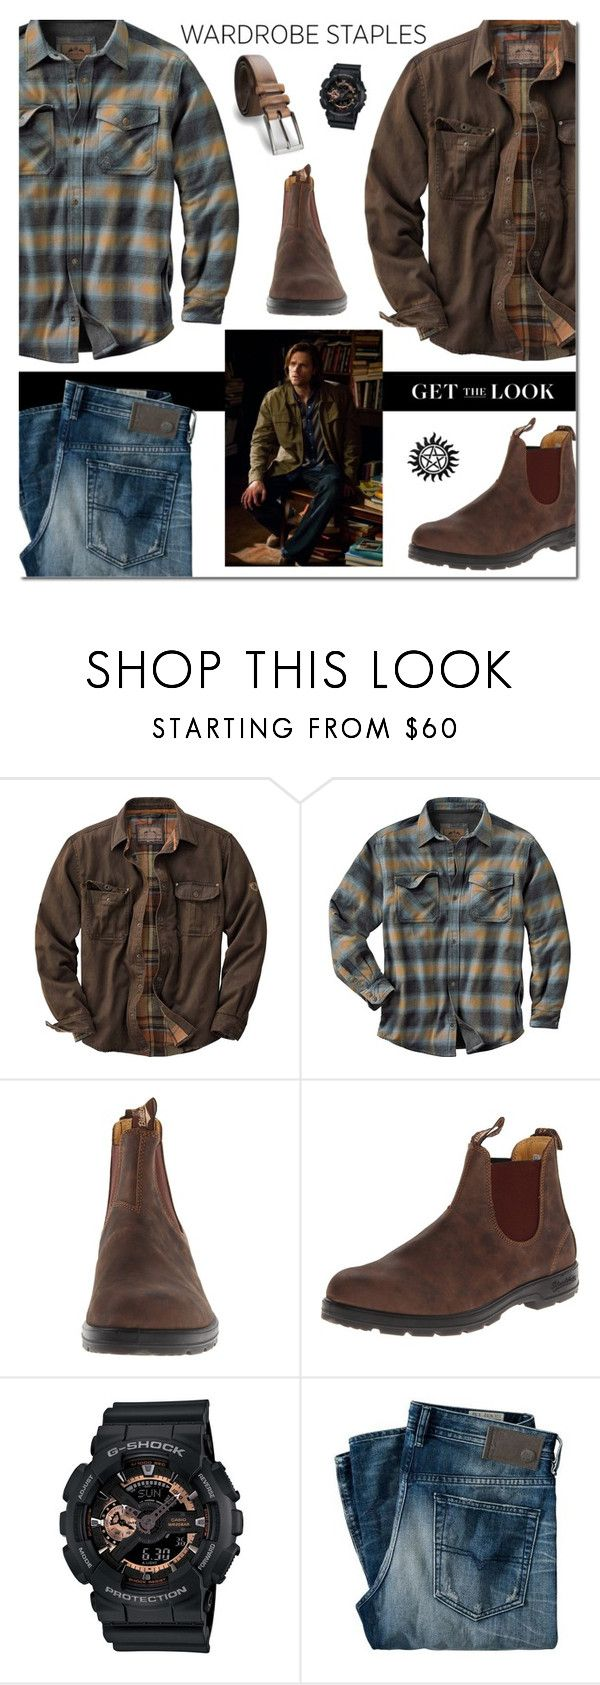 """""""PLAID: Winchester Style"""" by sjkdesign ❤ liked on Polyvore featuring Blundstone, G-Shock, James Campbell, men's fashion and menswear"""